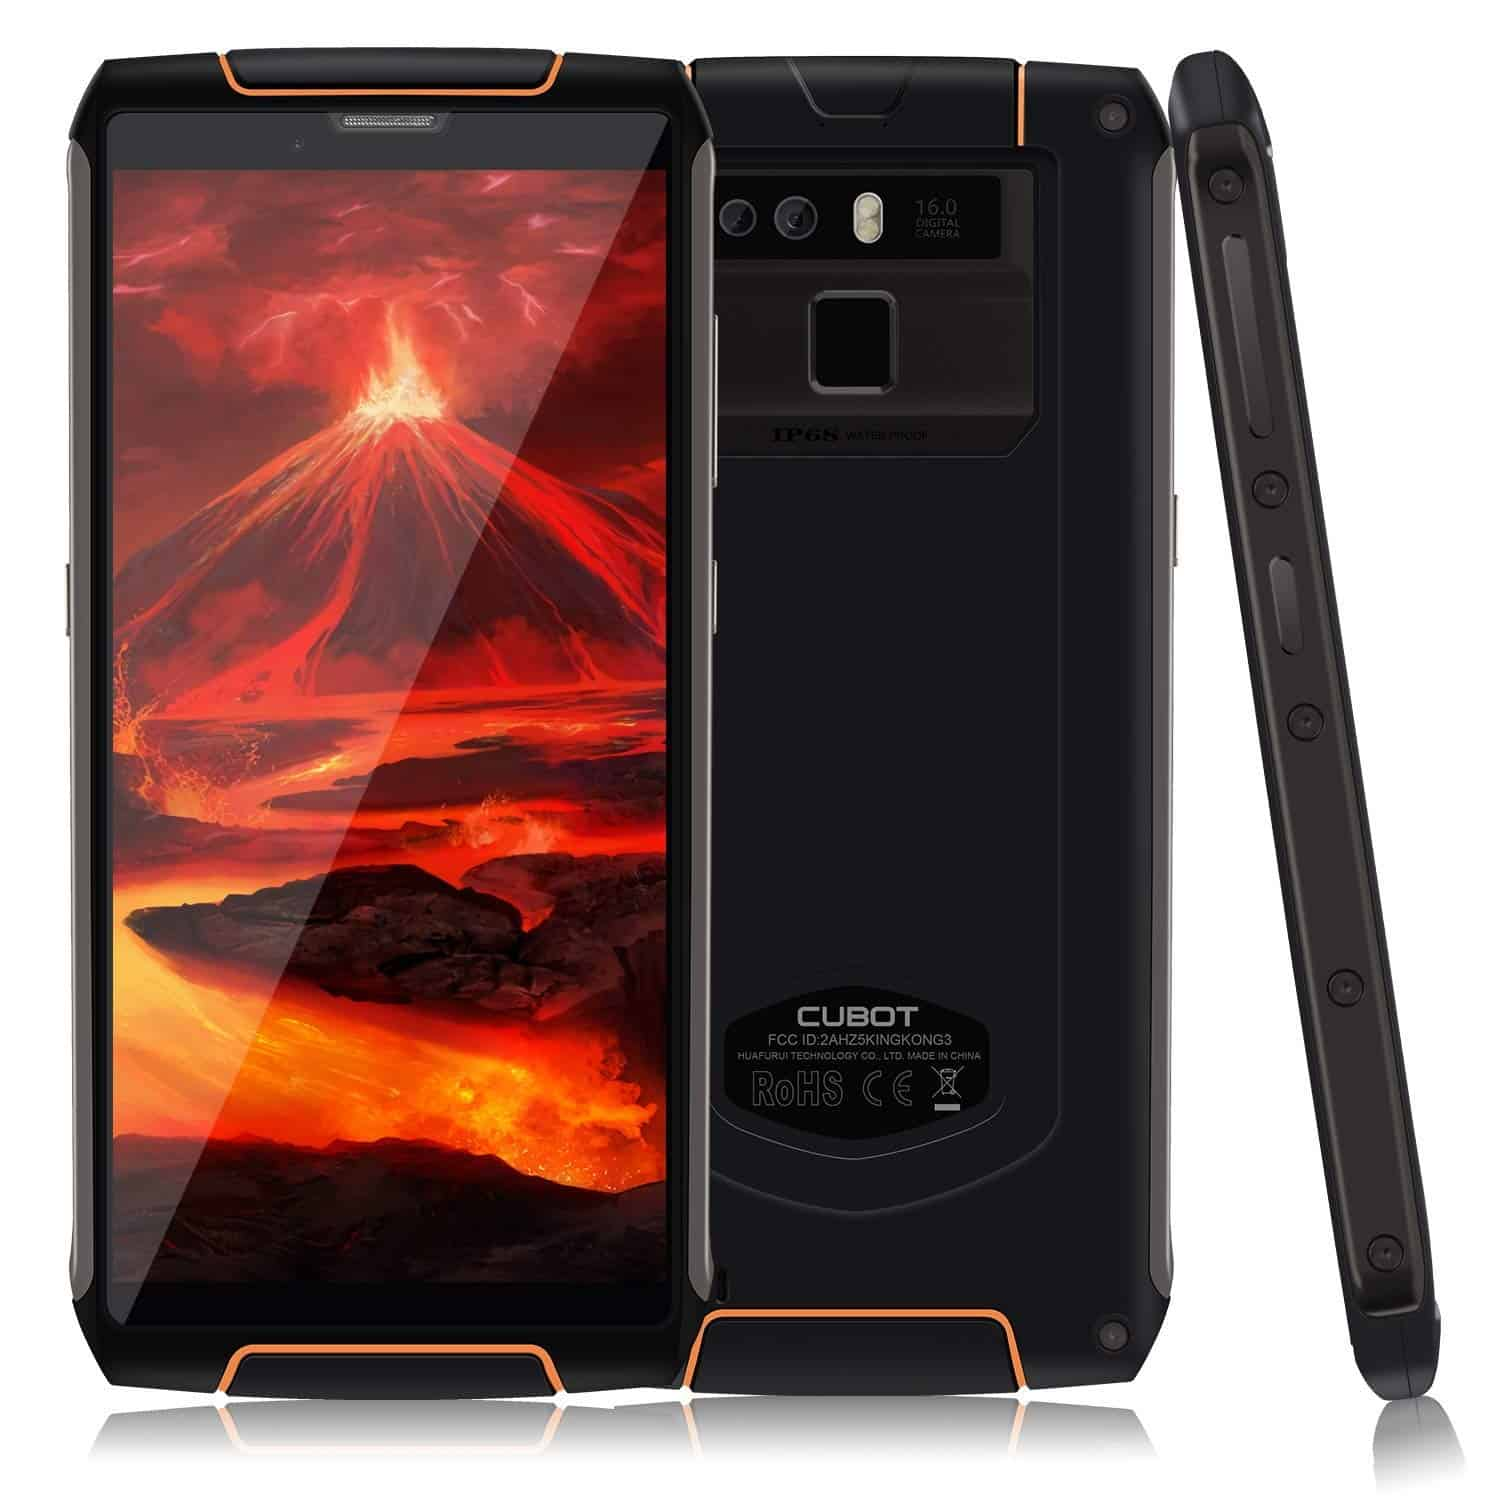 Best Phones for Outdoor Travel - CUBOT King Kong 3